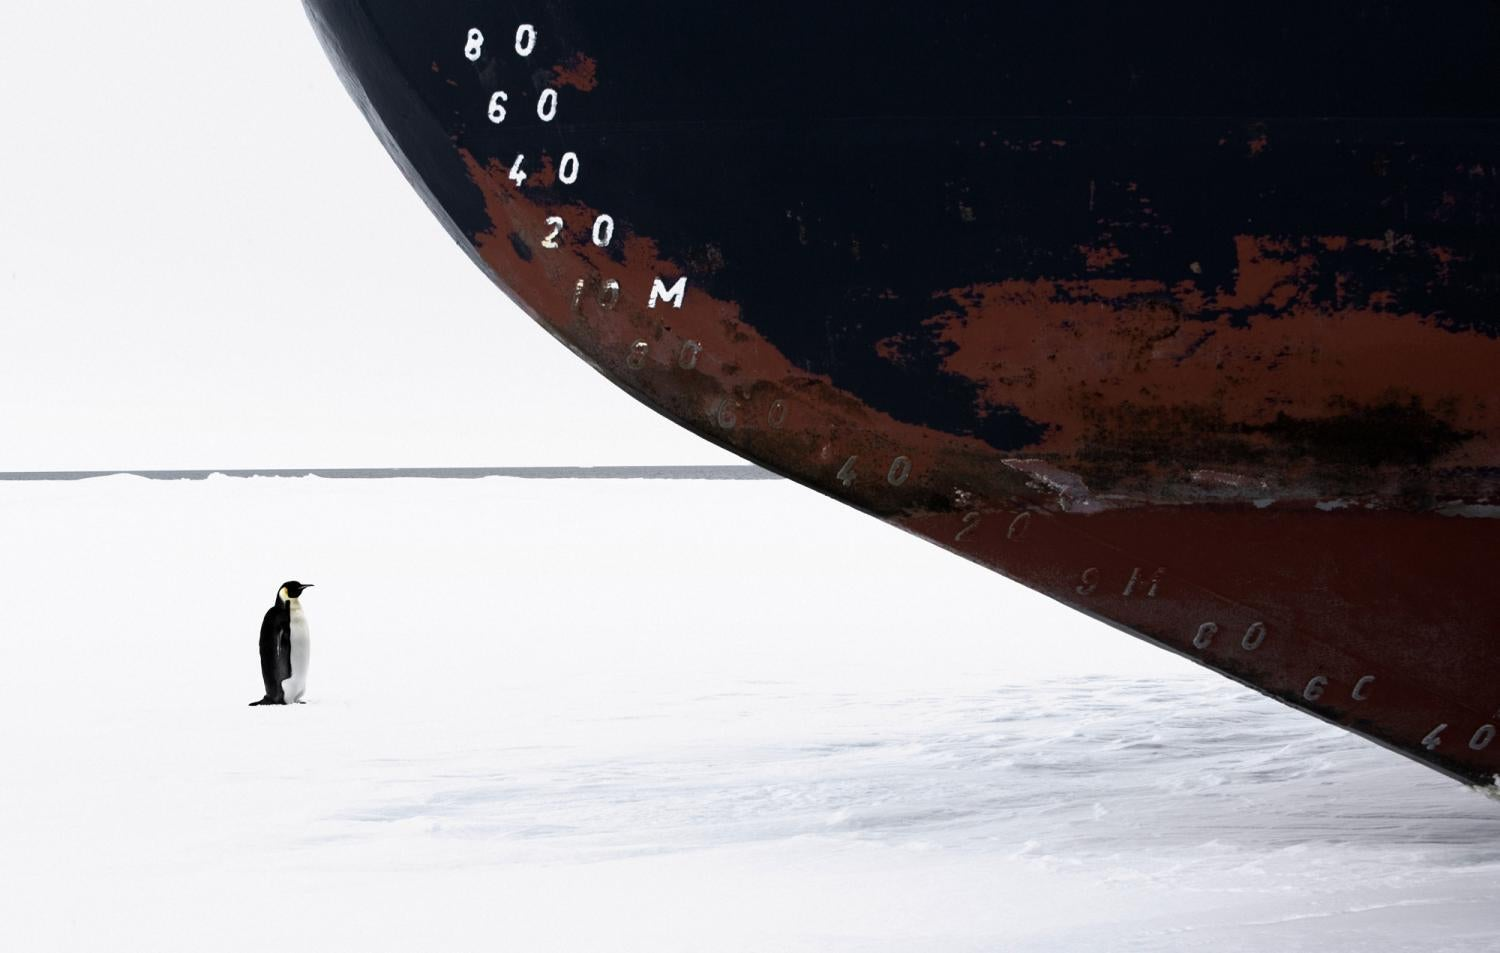 penguin standing next to icebreaker